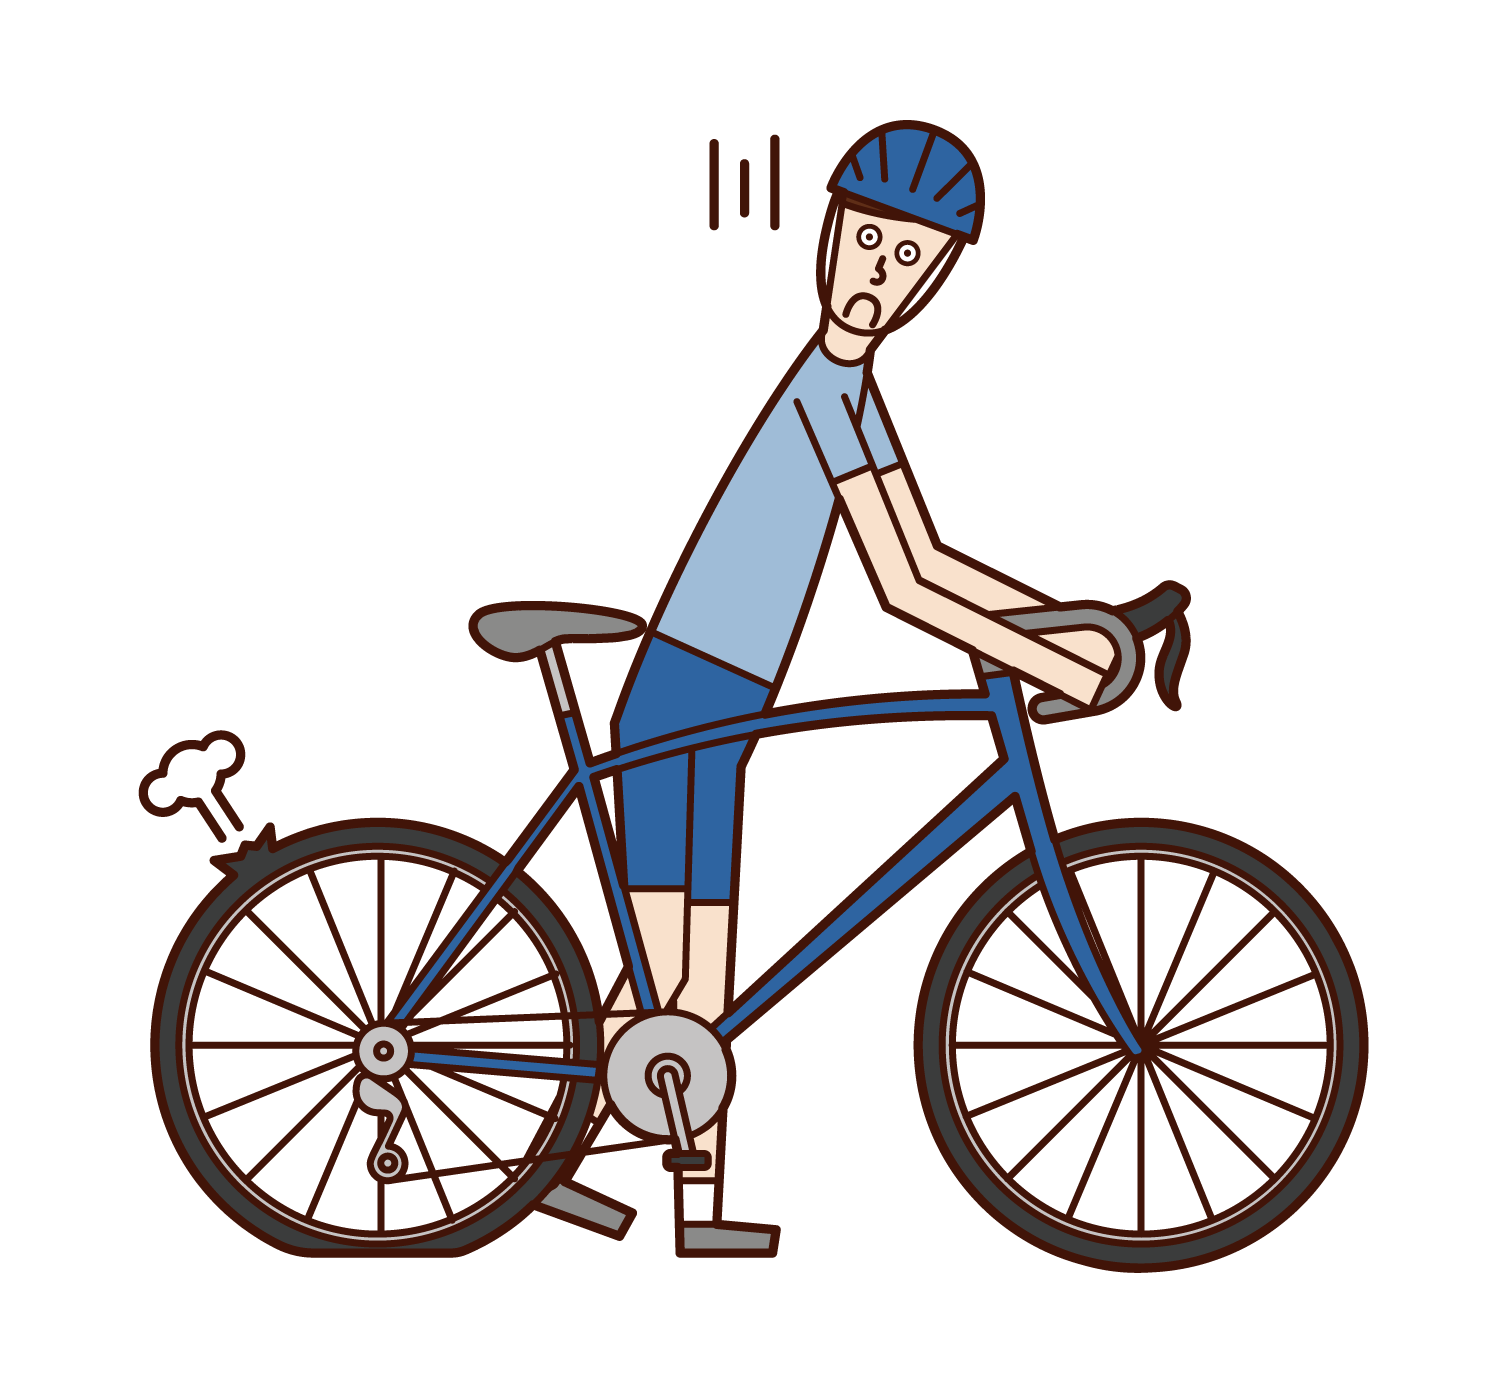 Illustration of a man pushing a flat-hit bicycle